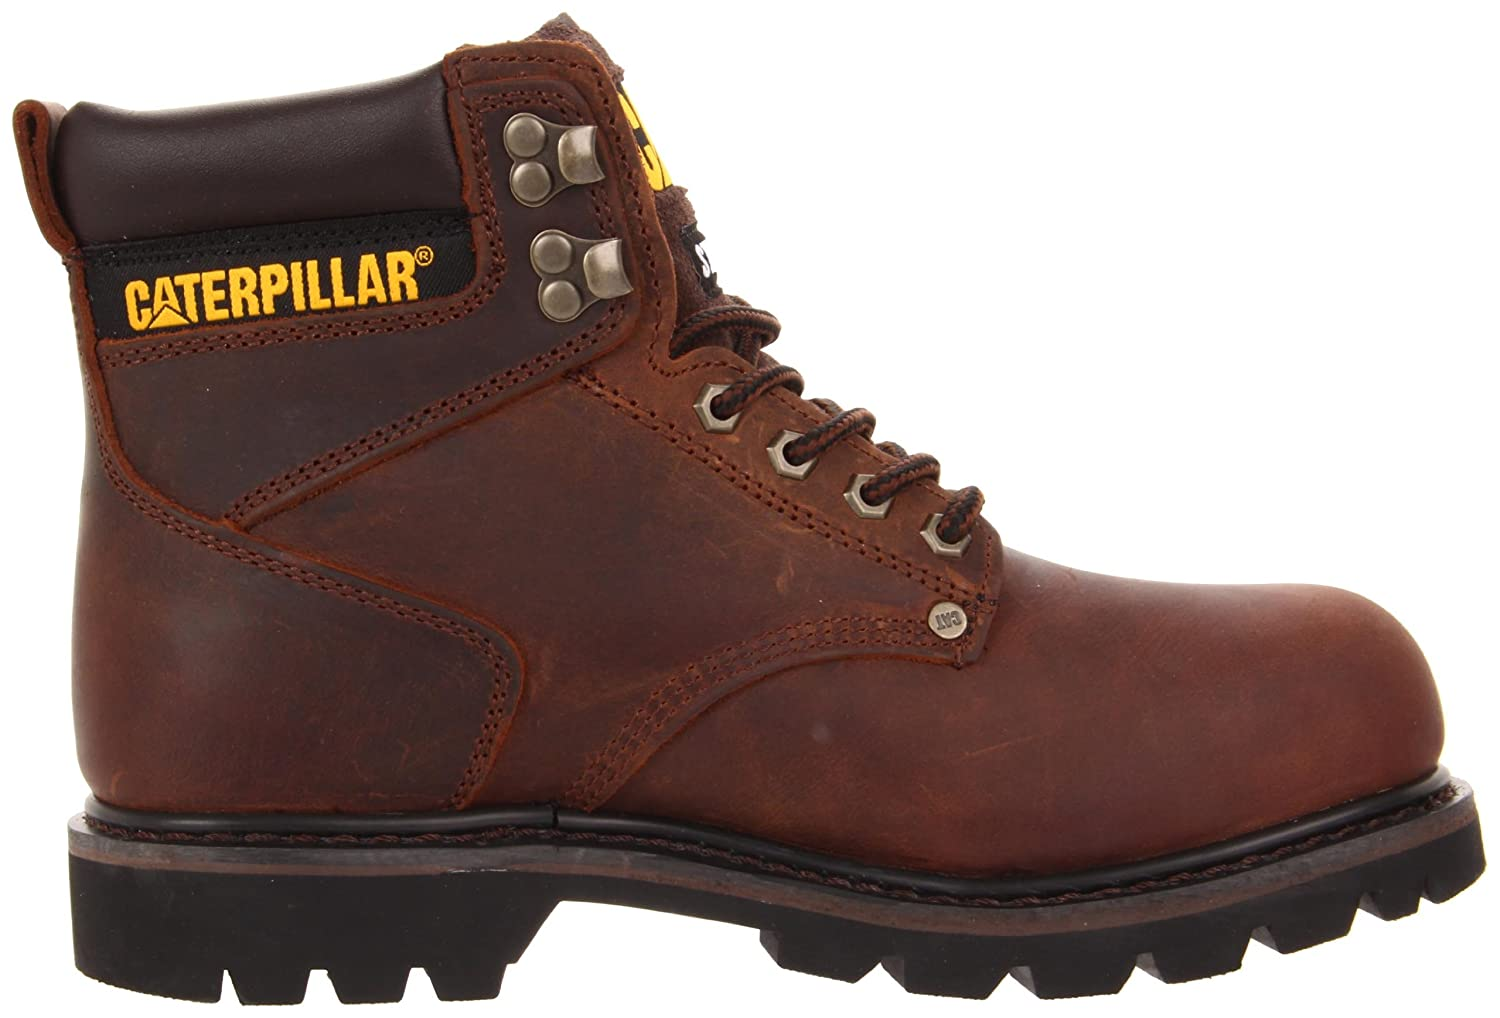 Caterpillar Men's Second Shift Steel Toe Work Boot: Industrial And Construction Shoes